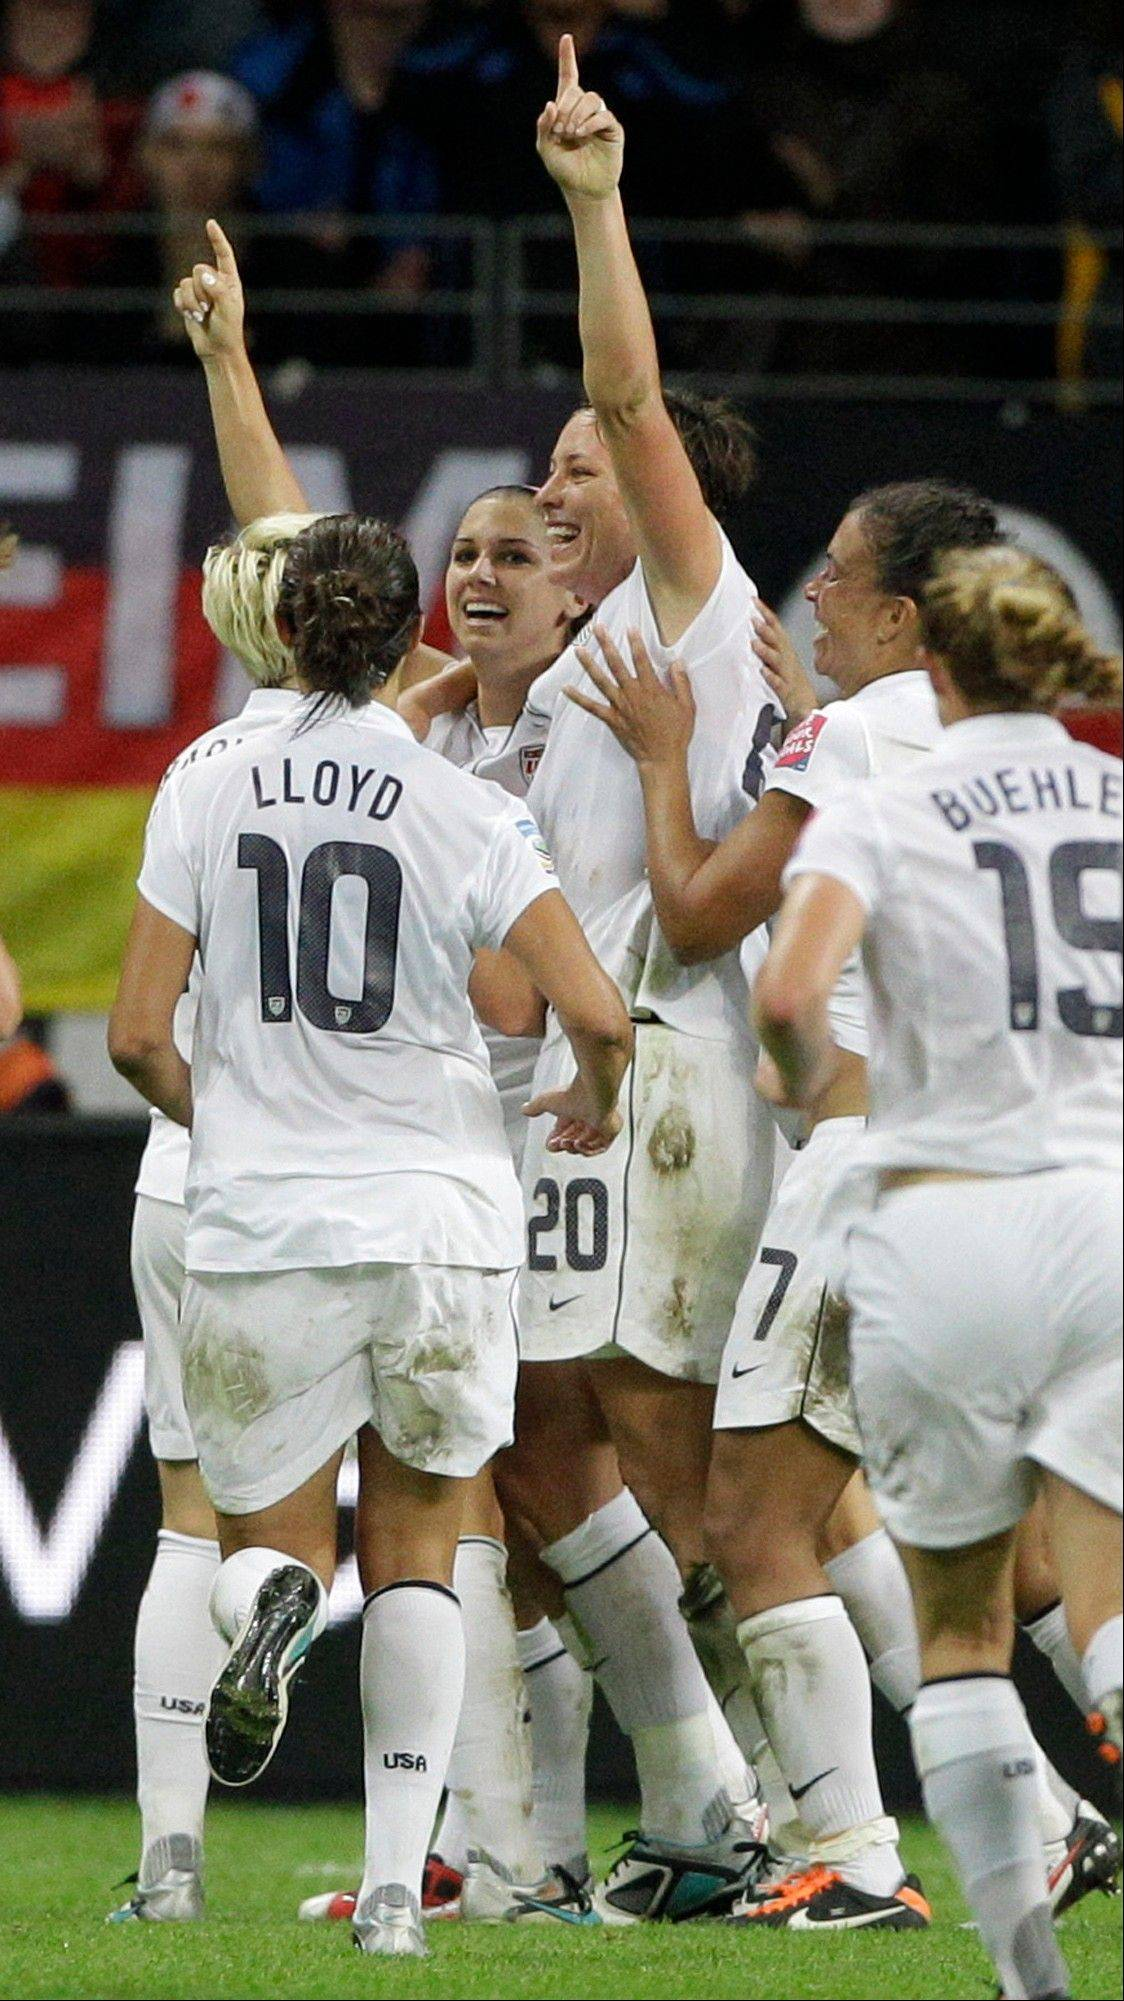 United States World Cup stars such as Alex Morgan, center left, and Abby Wambach and other teammates will have a new option to consider with the third try at a professional league for women's soccer.